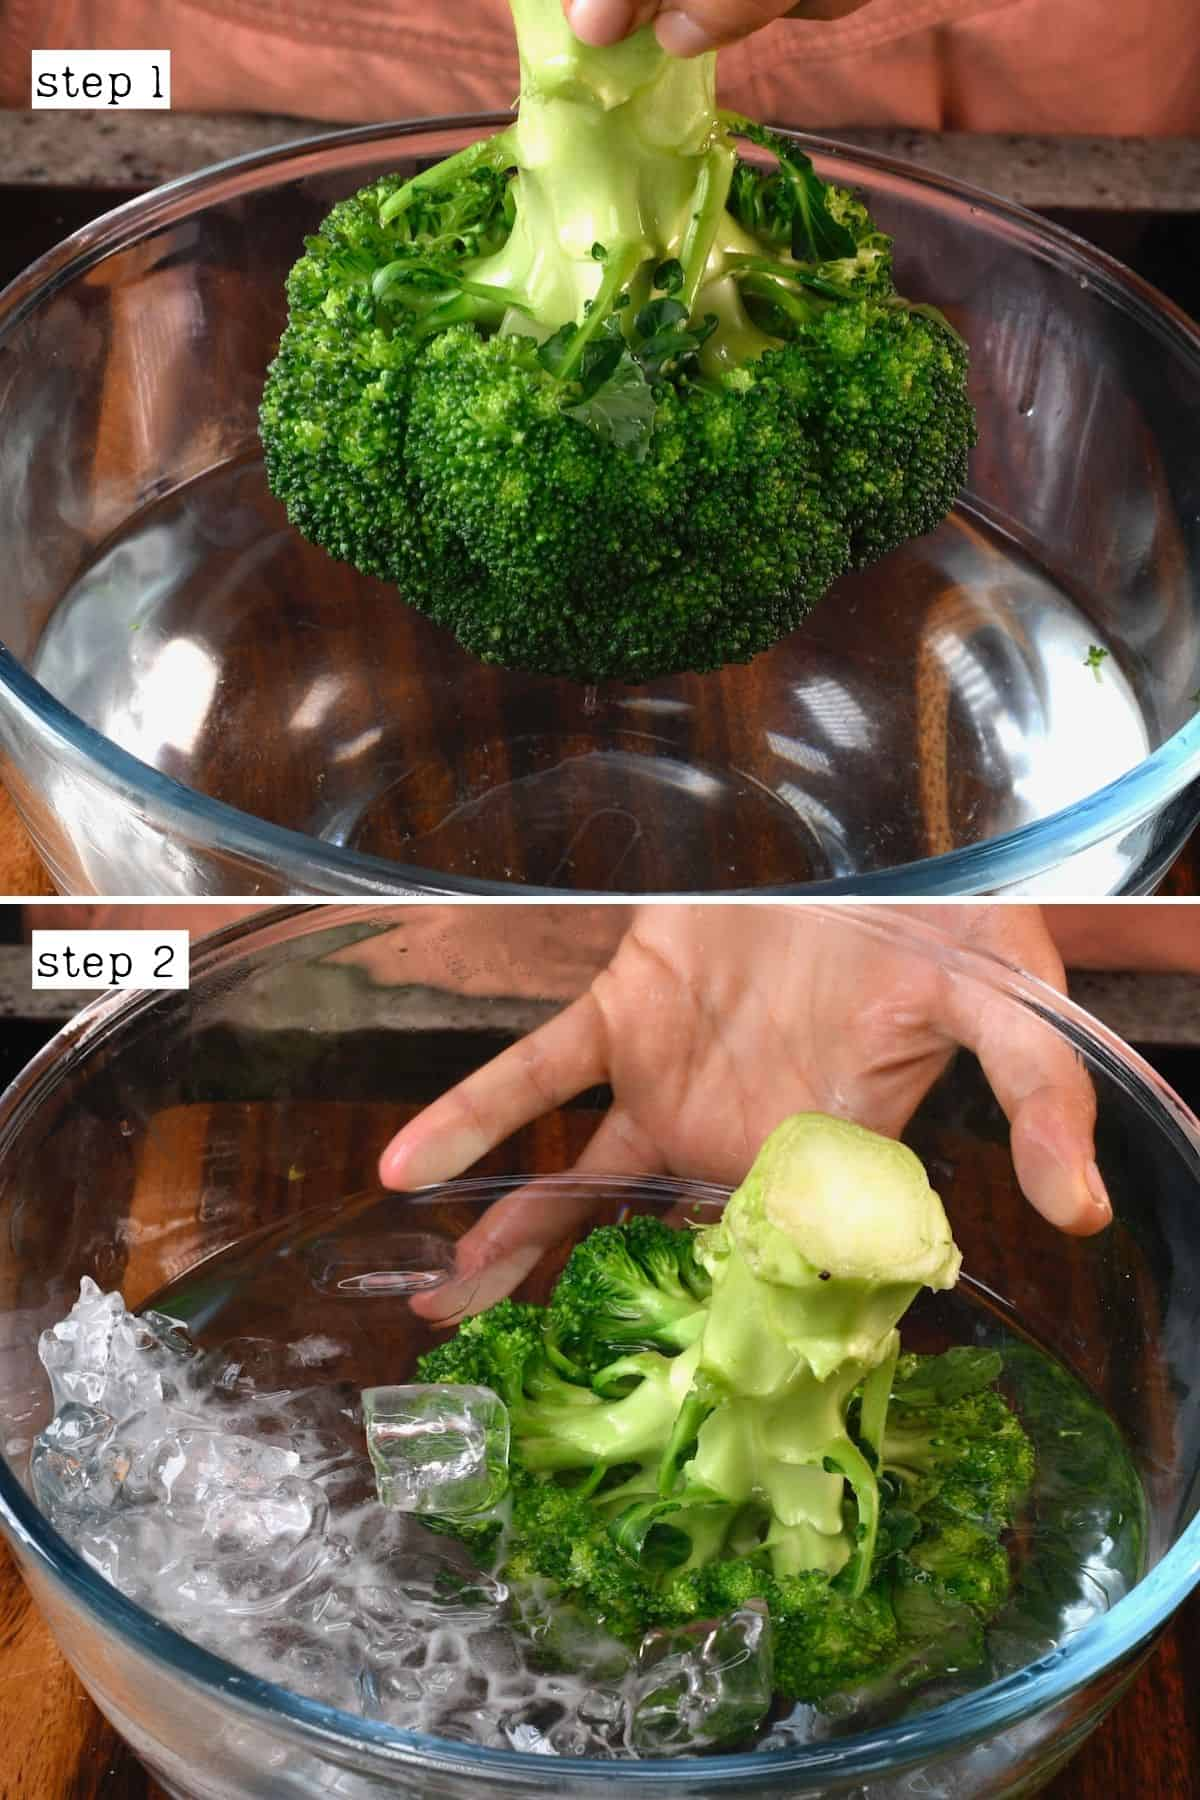 Steps for blanching broccoli